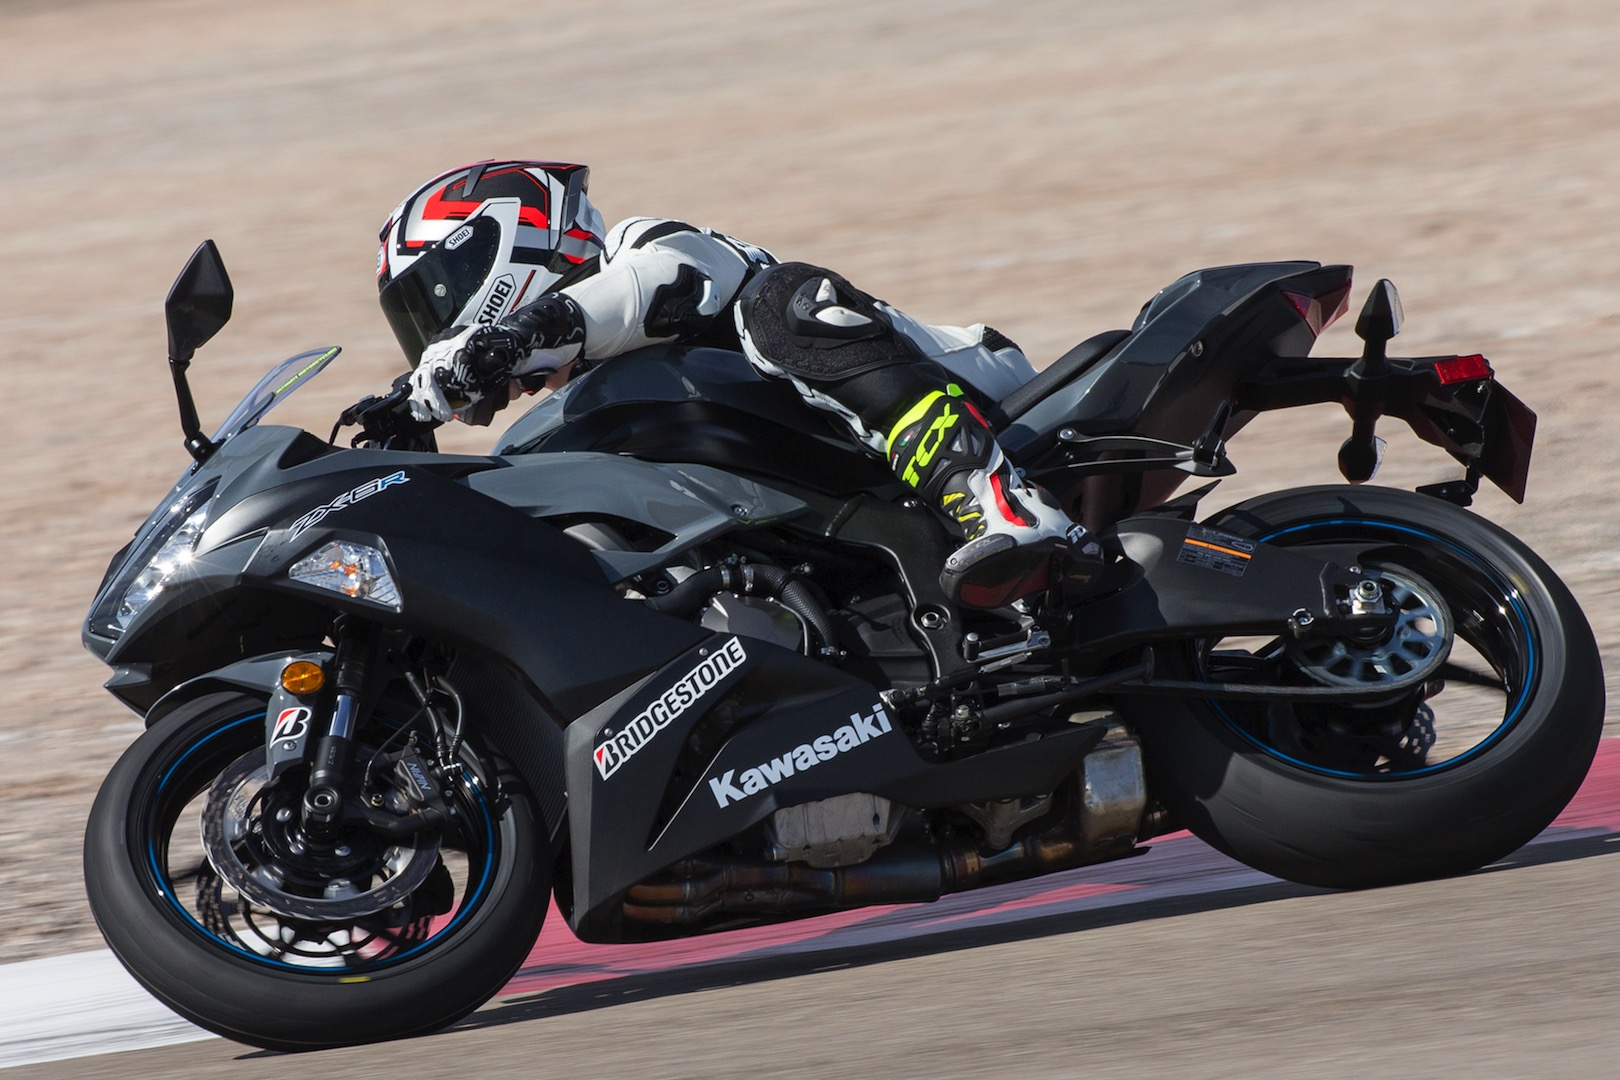 2019 Kawasaki Ninja ZX-6R top speed